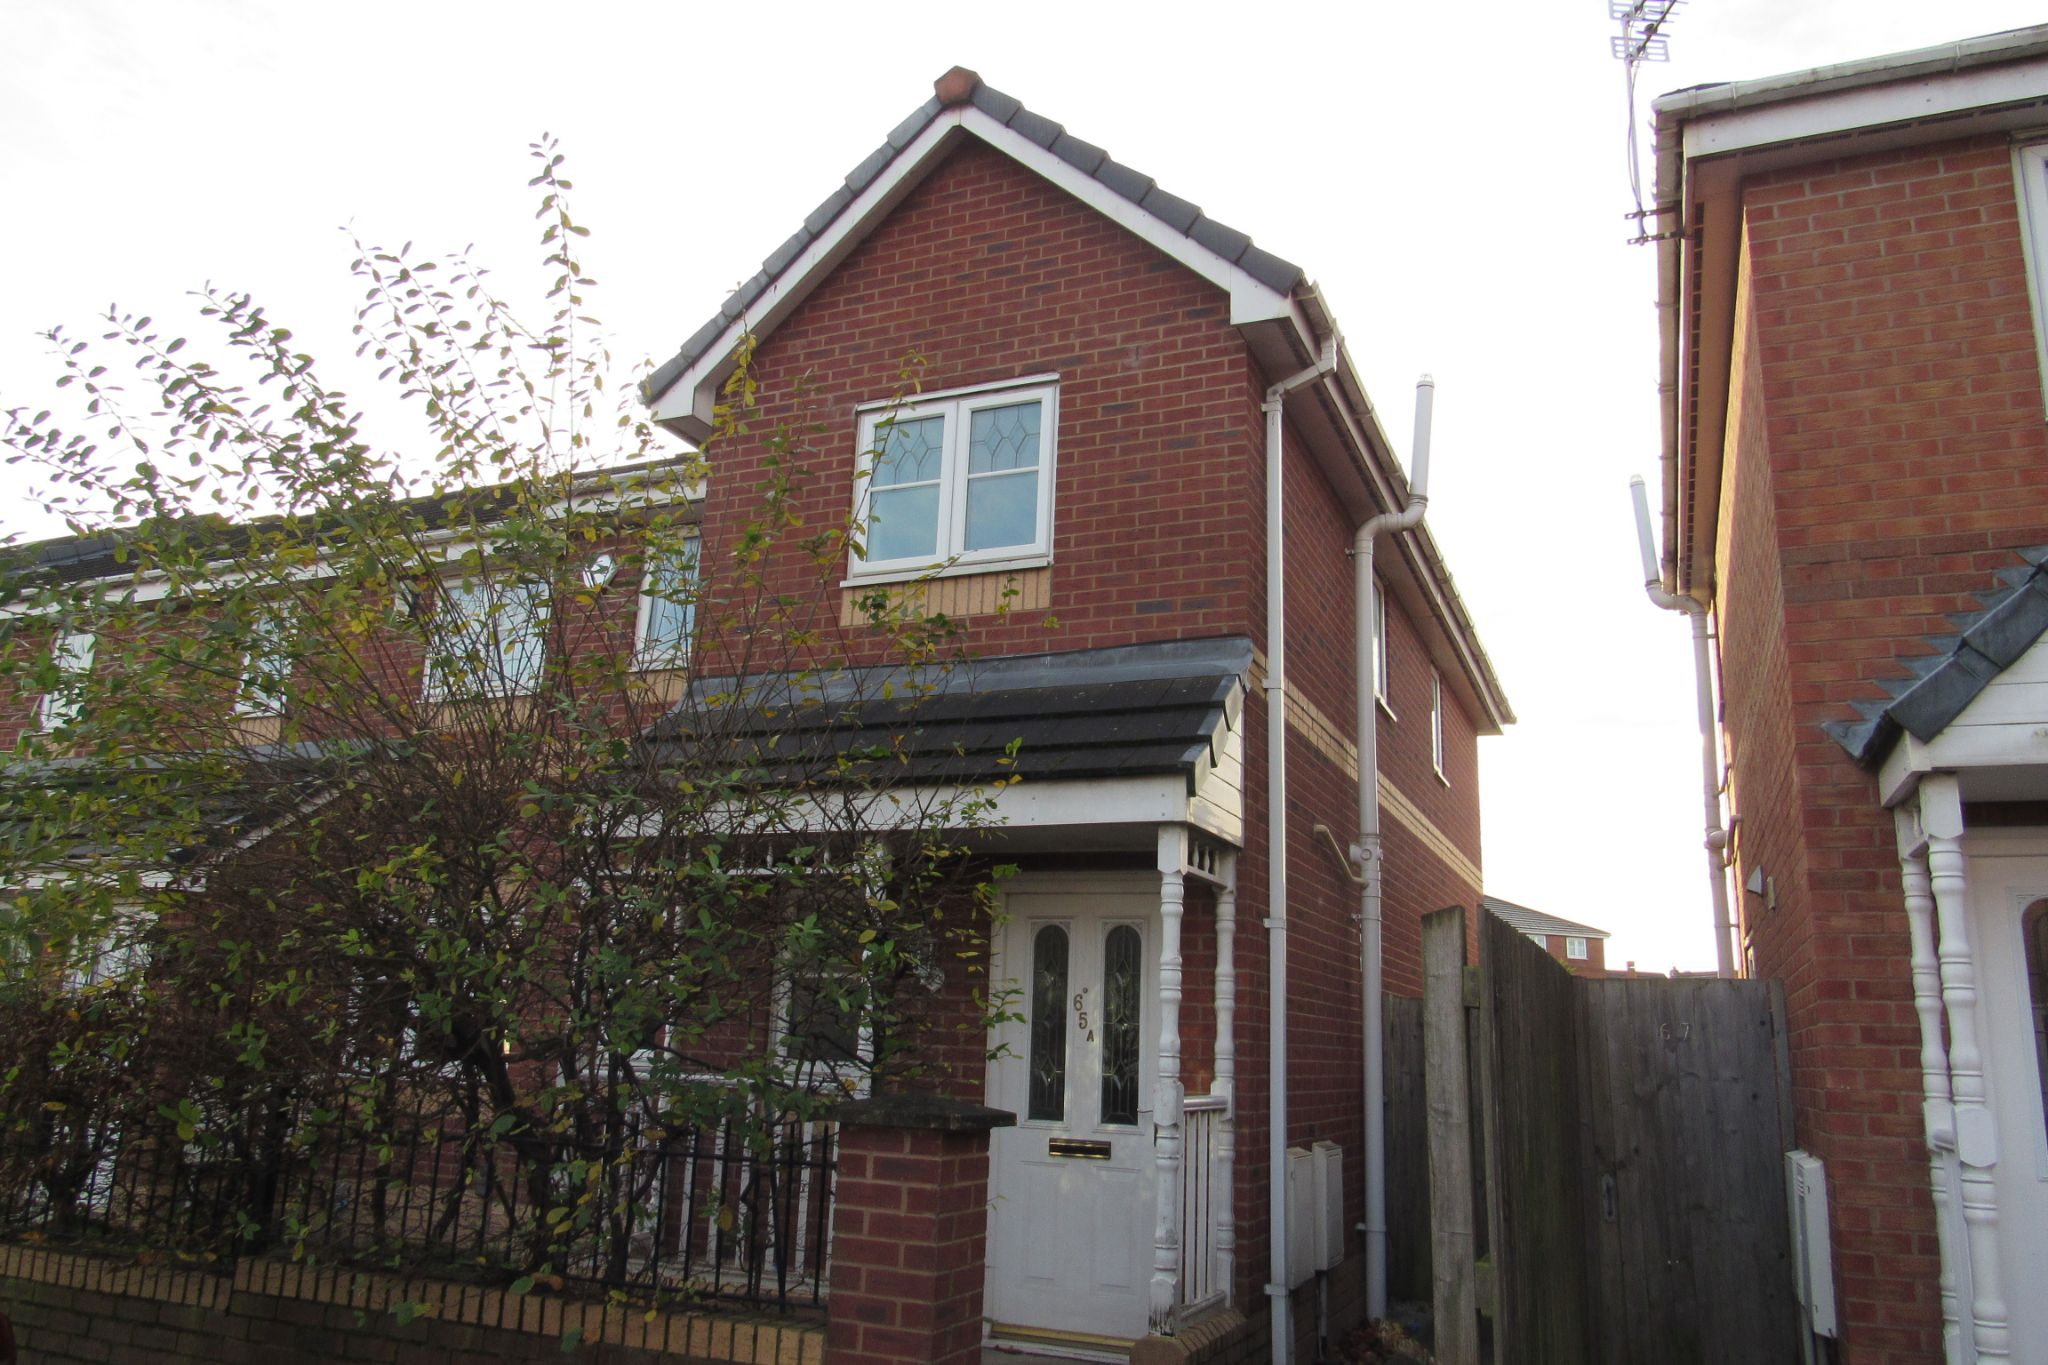 3 bedroom end terraced house To Let in Manchester - Photograph 1.